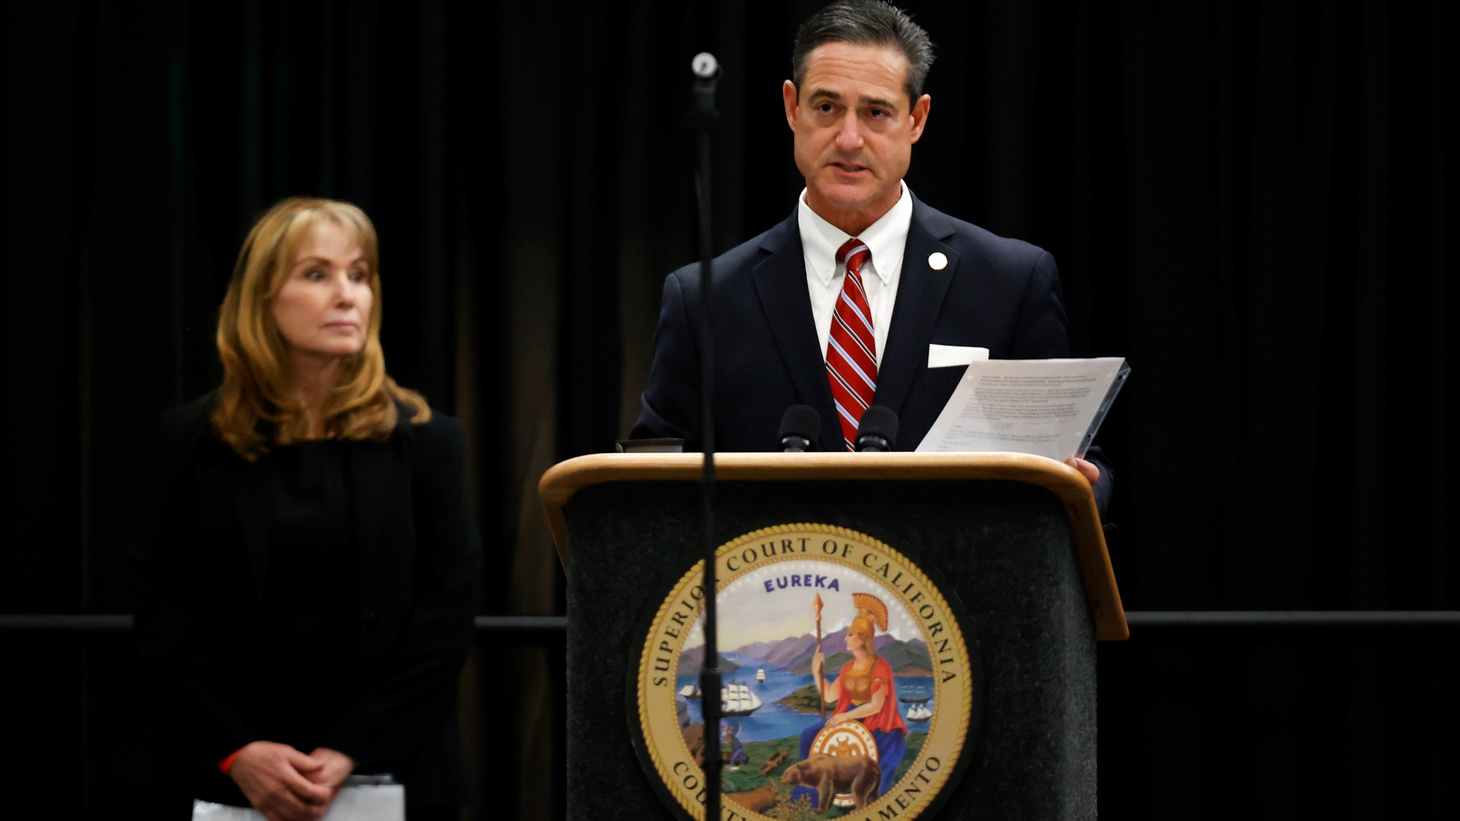 Orange County District Attorney Todd Spitzer speaks during a hearing against former police officer Joseph James DeAngelo Jr. on crimes attributed to the Golden State Killer, at the Sacramento County courtroom, in Sacramento, California, U.S., June 29, 2020.